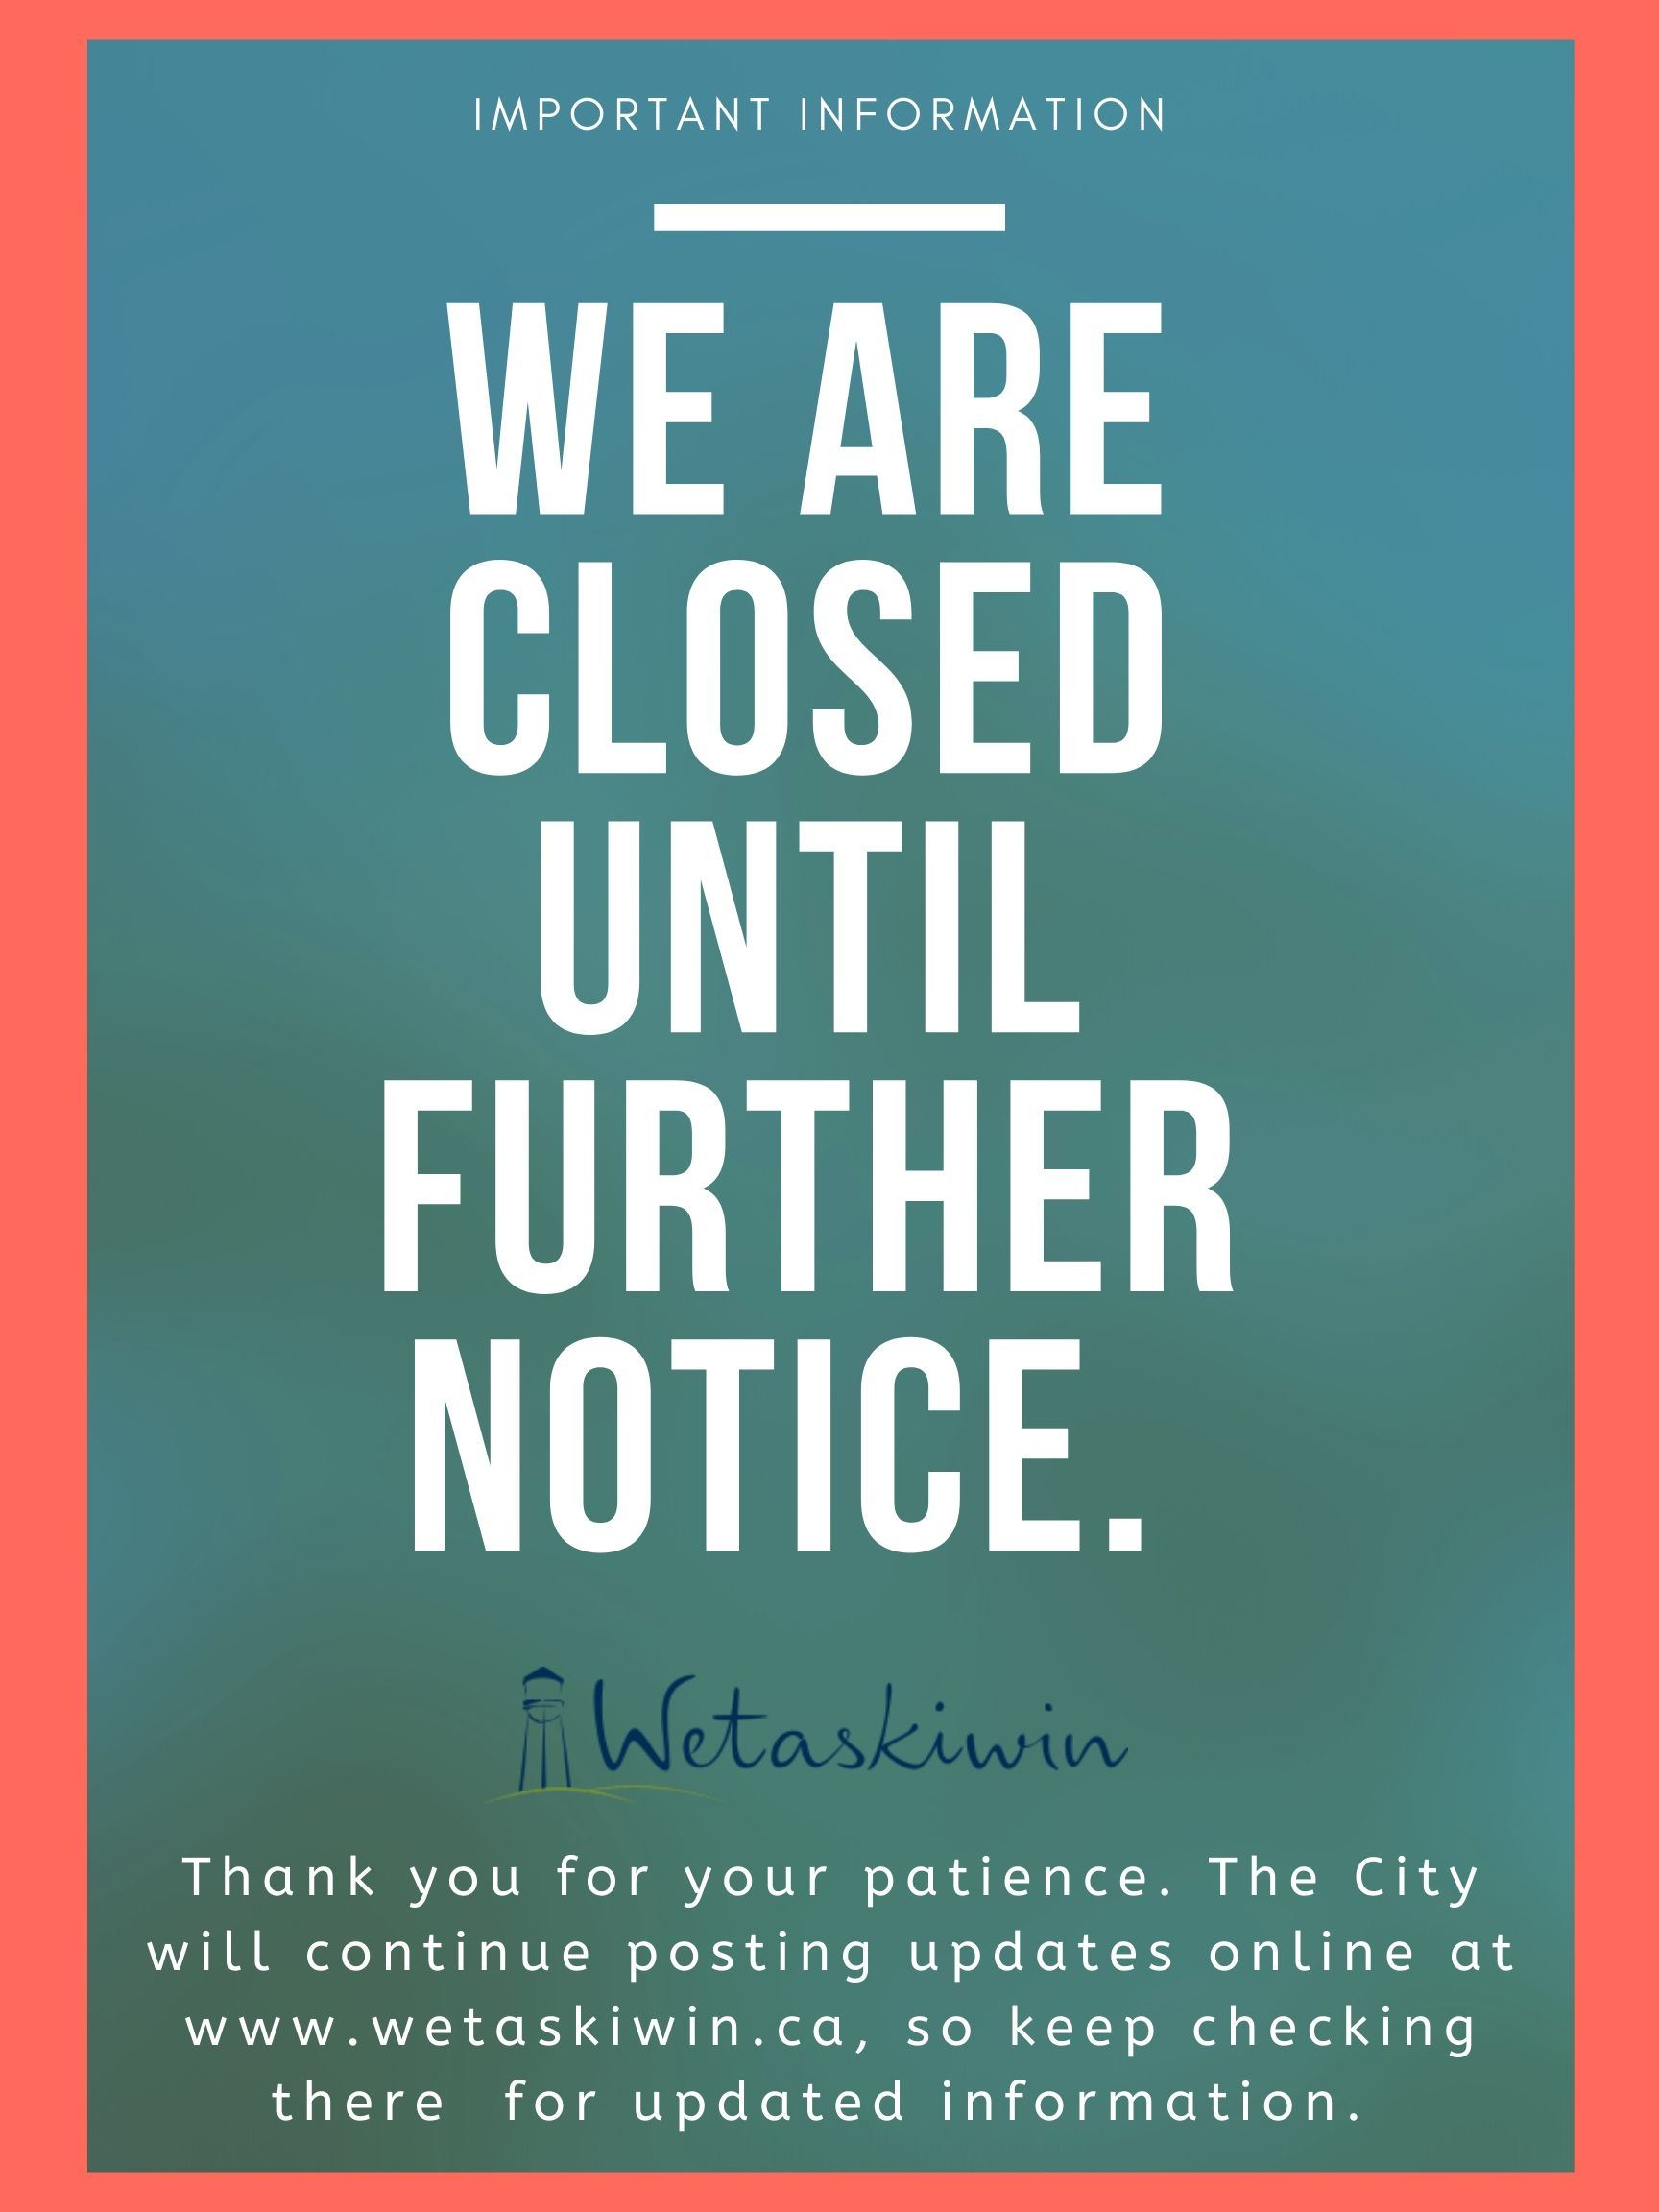 We are closed (1)